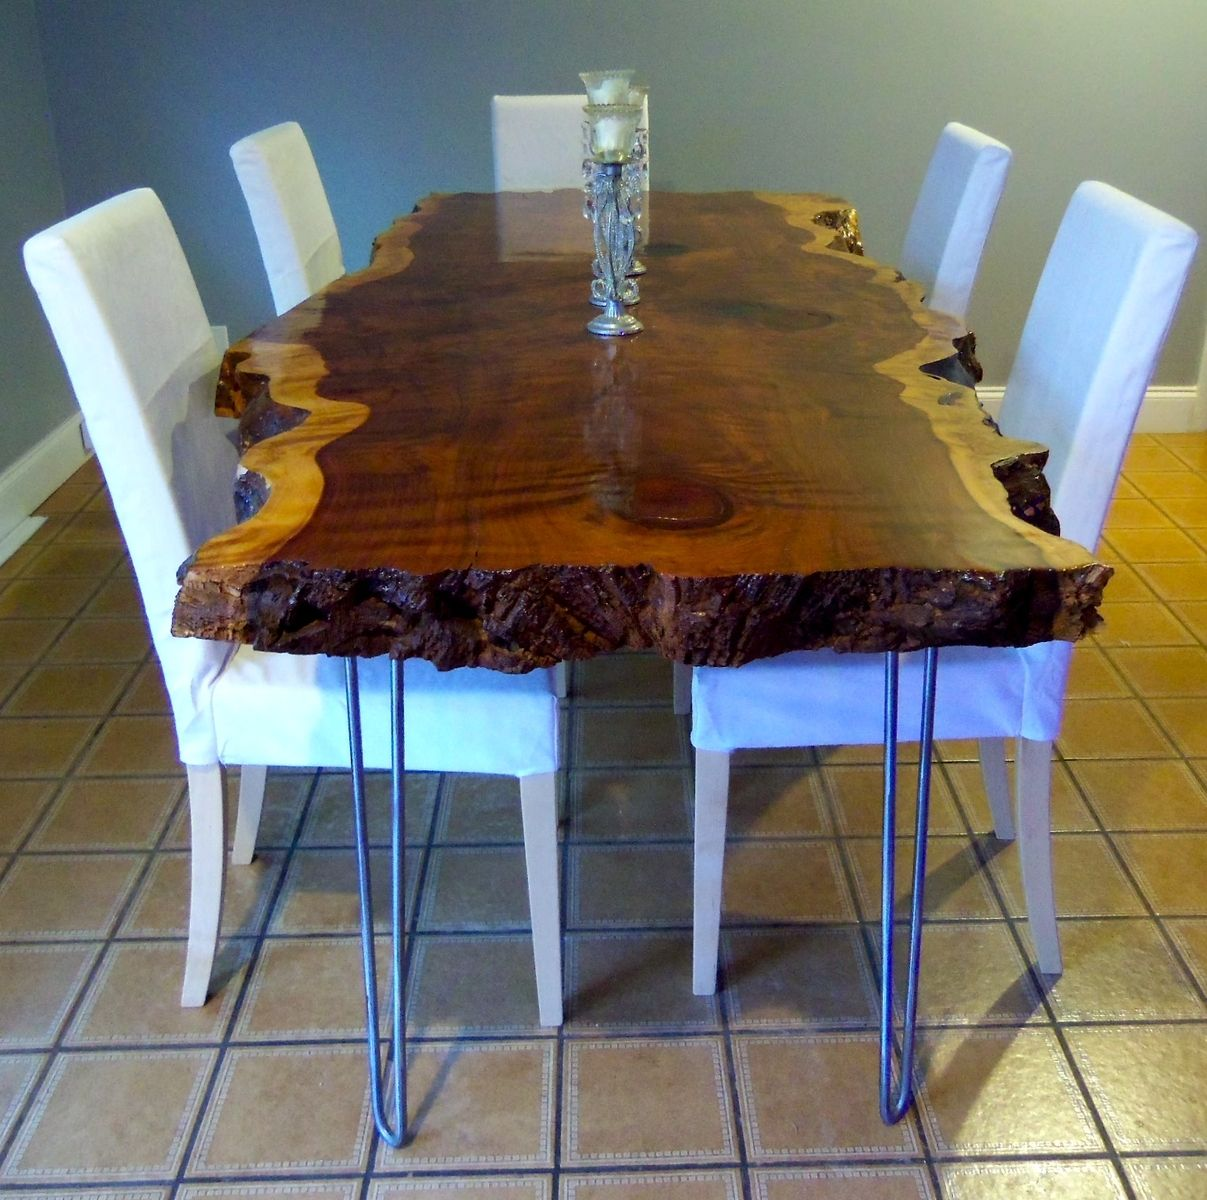 Live Edge Redwood Kitchen Table | CustomMade.com | $3,900 ...